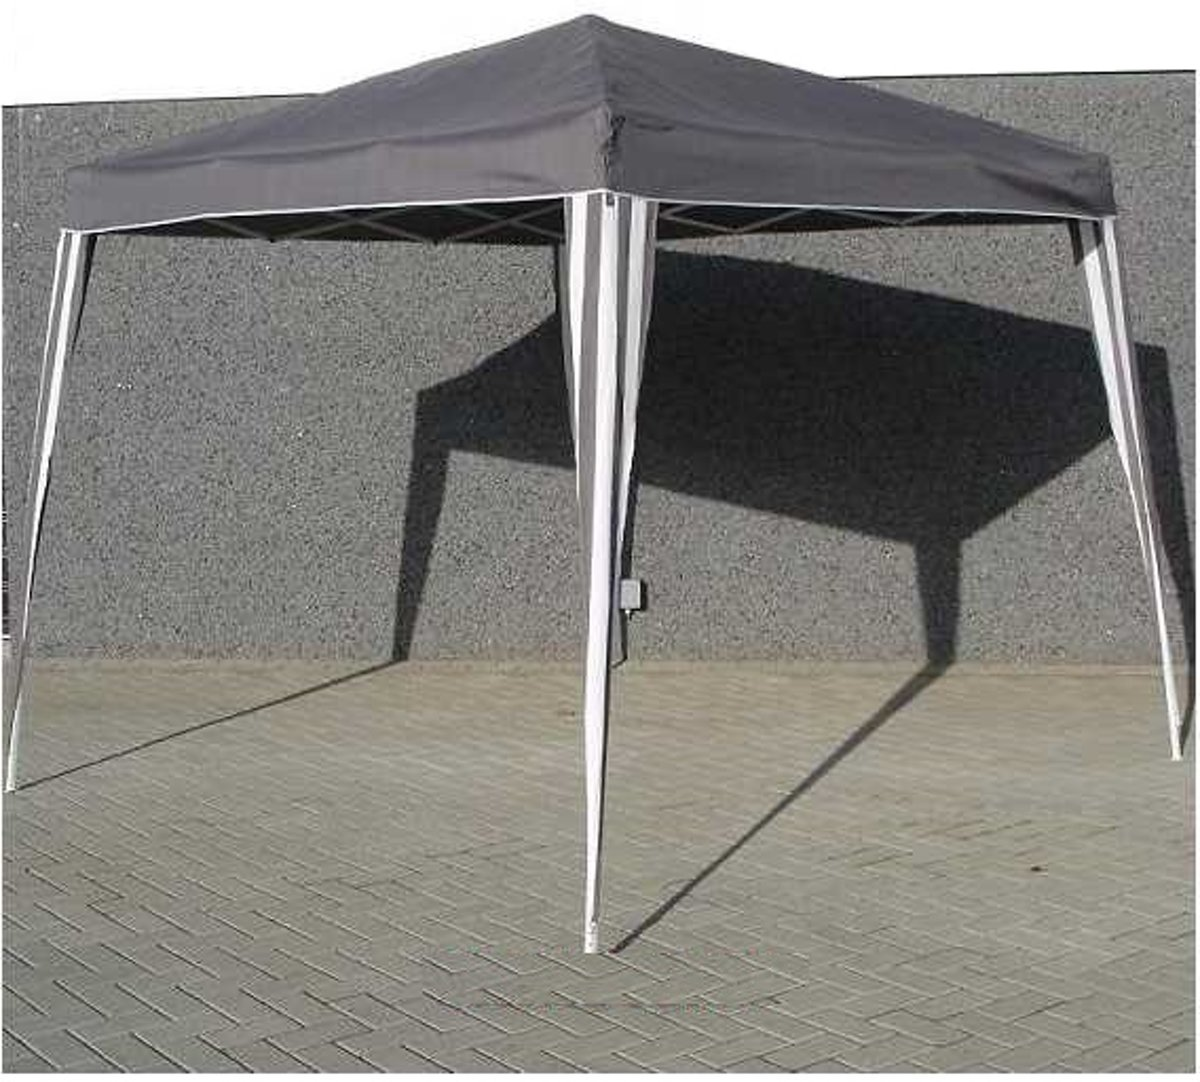 Partytent 3x3 Praxis Partytent Easy Up Grijs Antraciet 3 X 3 M